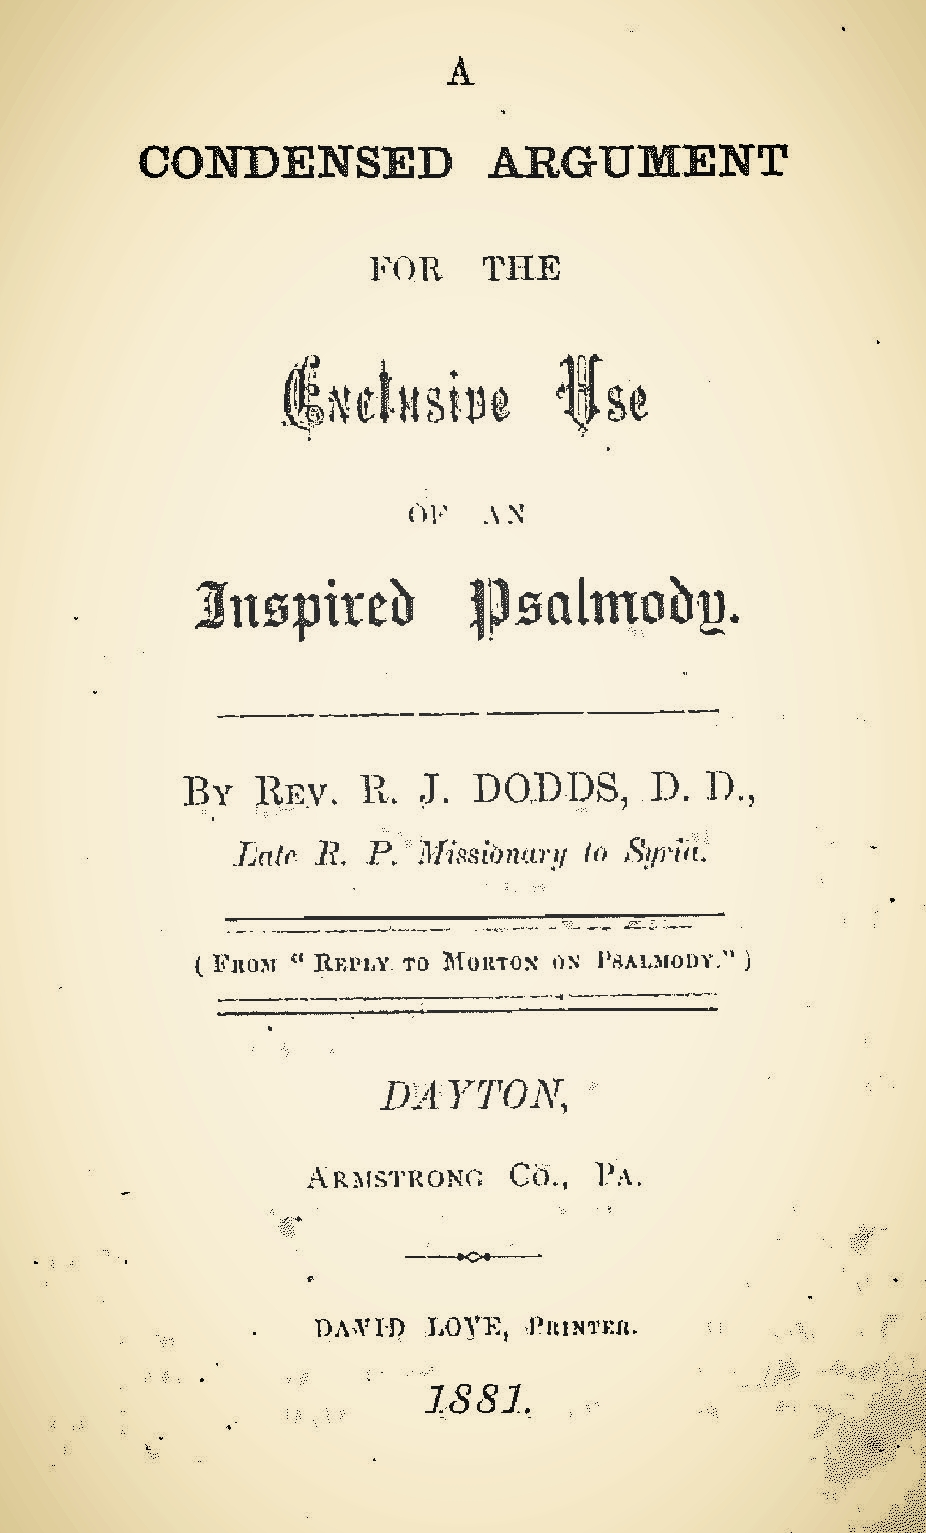 Dodds, Robert James, A Condensed Argument for the Exclusive Use of an Inspired Psalmody Title Page.jpg